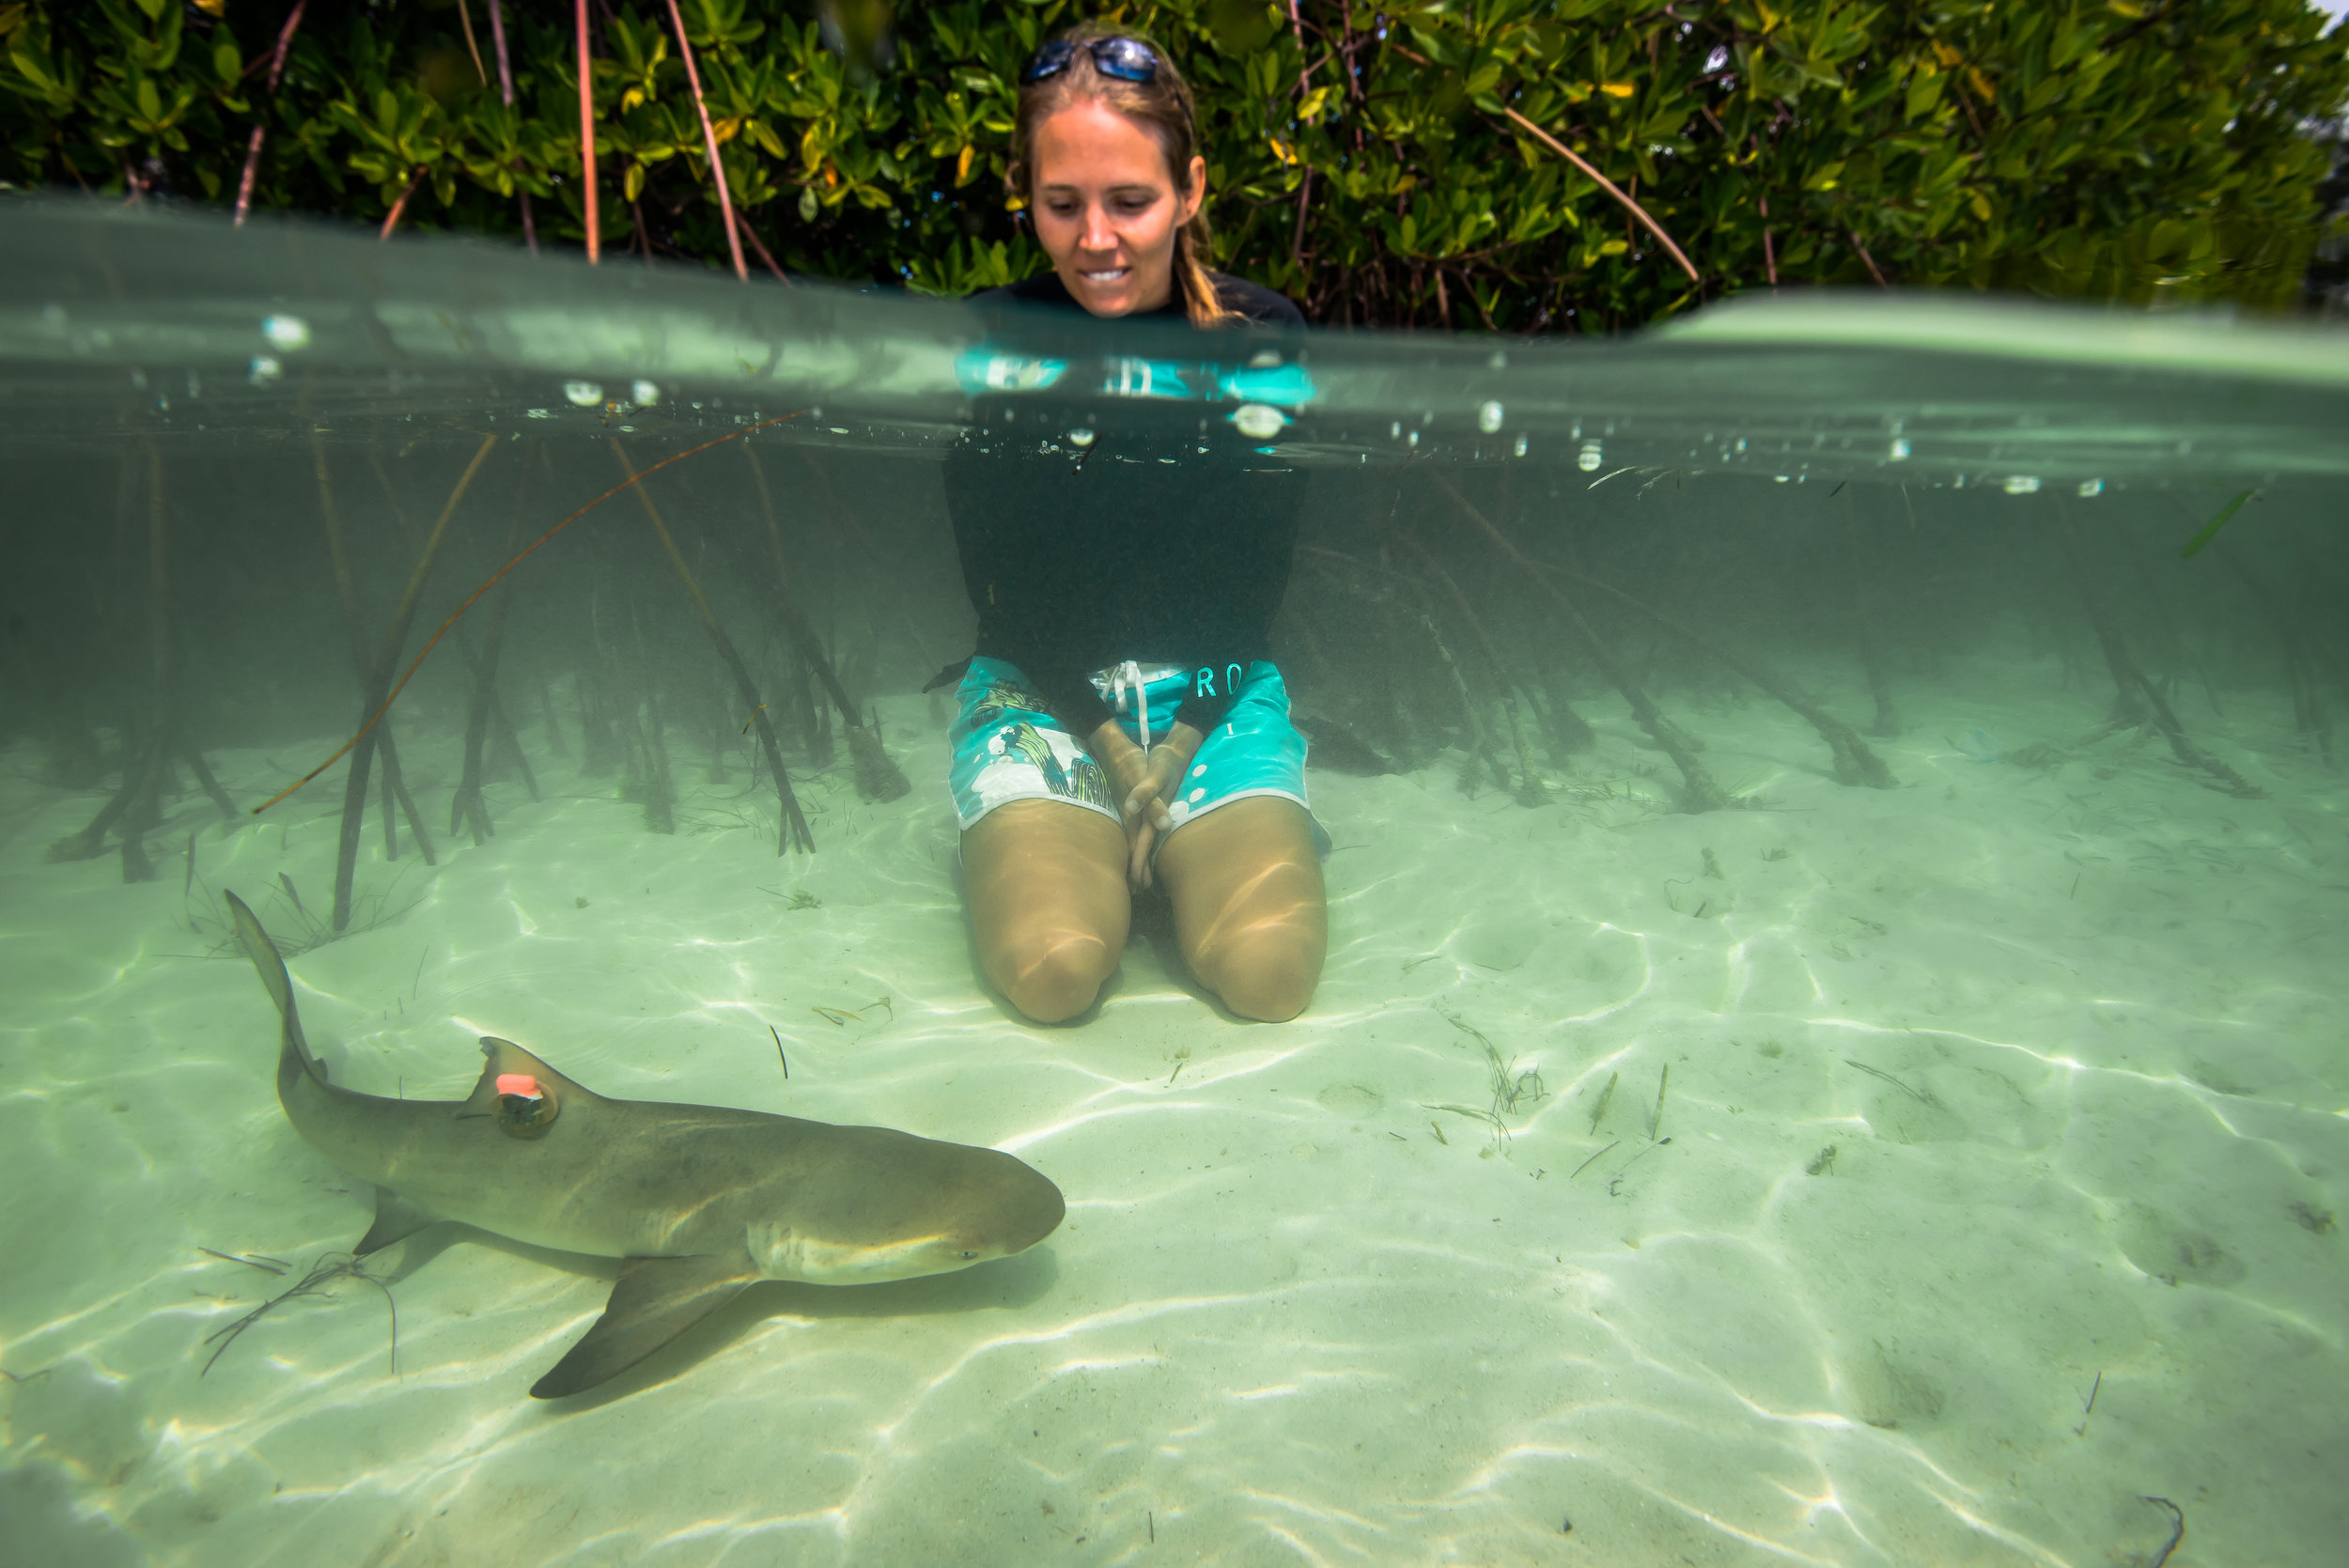 Dr. Lauran Brewster is a Postdoctoral Fellow at Florida Atlantic University's Harbor Branch Oceanographic Institute. Lauran obtained her PhD through the University of Hull (U.K.) and the Bimini Biological Field Station, where her dissertation focused on using accelerometers to derive field metabolic rates and activity budgets of juvenile lemon sharks. Prior to joining us here at The Fisheries Ecology and Conservation Lab, Lauran was an Endeavour Research Fellow at Murdoch University, Western Australia. Her primary academic interests involve the application of bio-logging tools and machine learning techniques to better understand the behavioral and physiological ecology of predatory fish. Dr. Brewster is primarily working on the  Grouper Guard  project, where she is applying her skills garnered from her PhD work on lemon sharks towards Goliath Grouper.